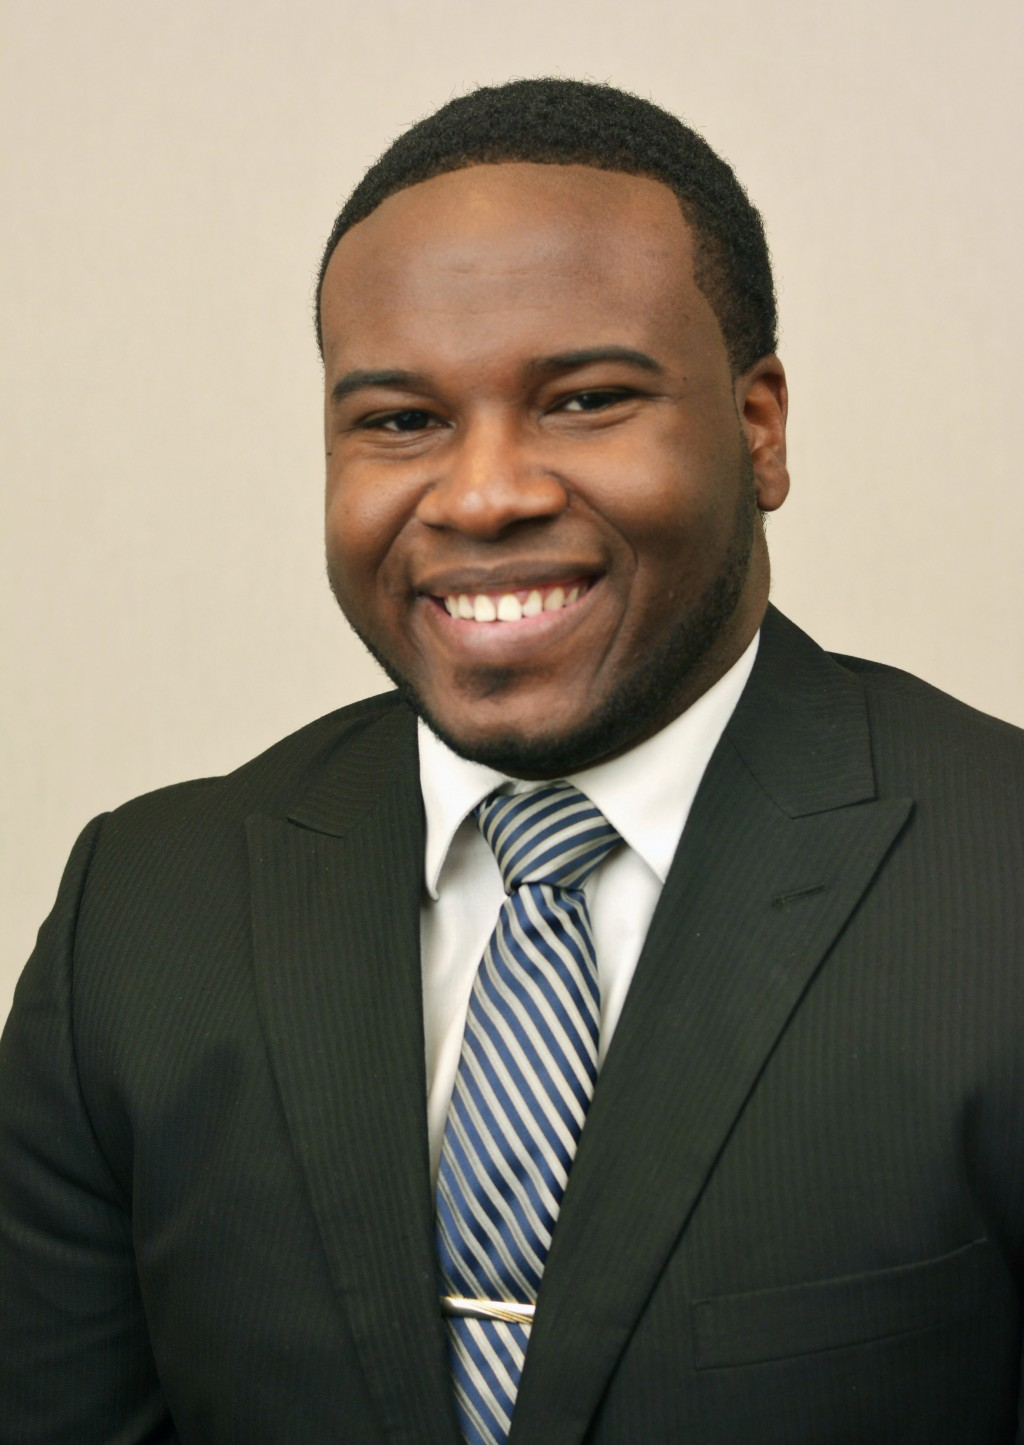 This Feb. 27, 2014, portrait provided by Harding University in Searcy, Ark., shows Botham Jean. Authorities said Friday, Sept. 7, 2018, that a Dallas